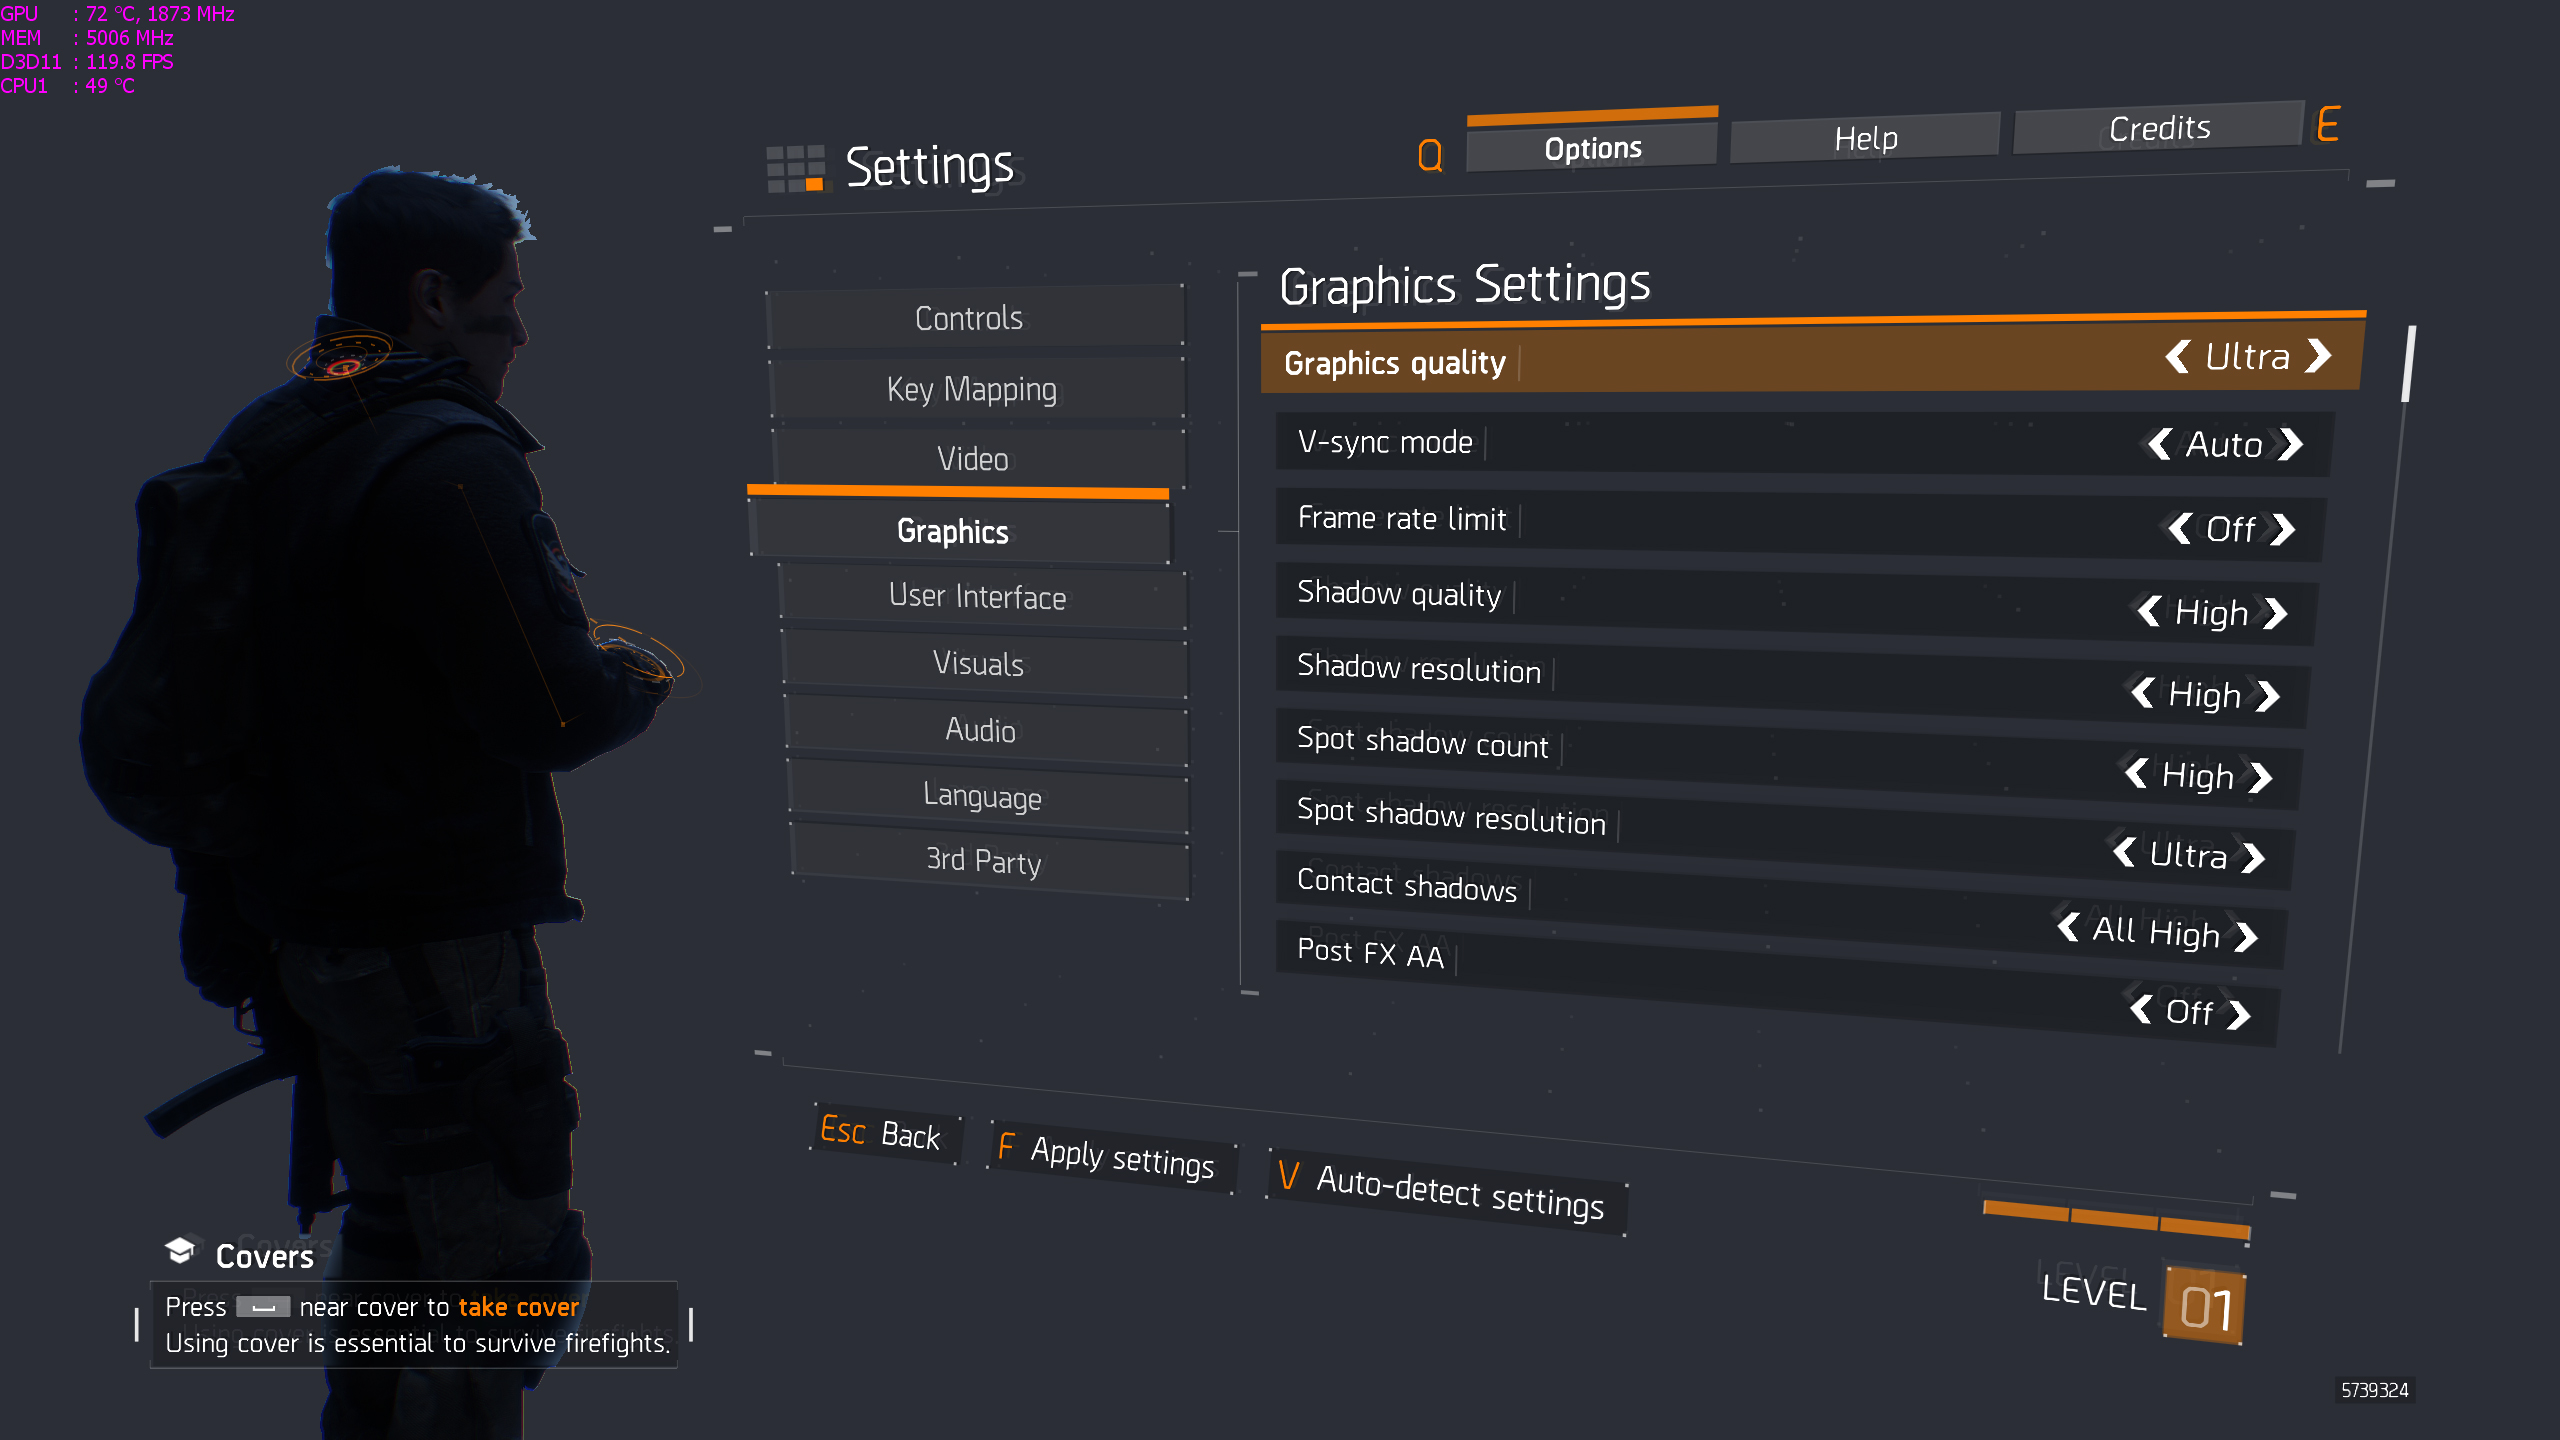 Set Graphic Options to ULTRA. No other custom settings.